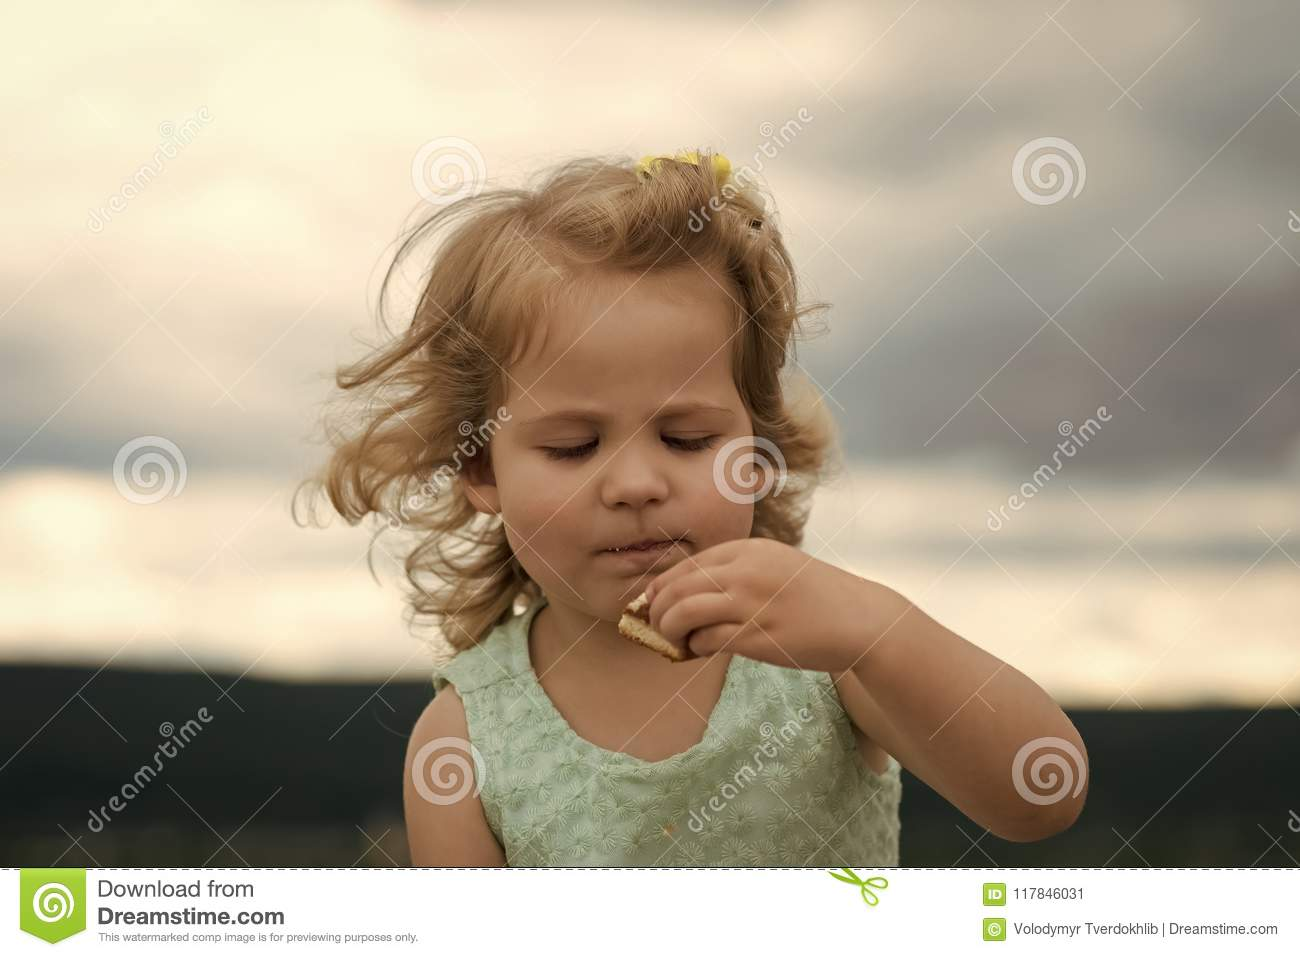 c5b3dc7c627a Little girl face portrait in your advertisnent. Girl child eat cookie on summer  day on cloudy sky. Food